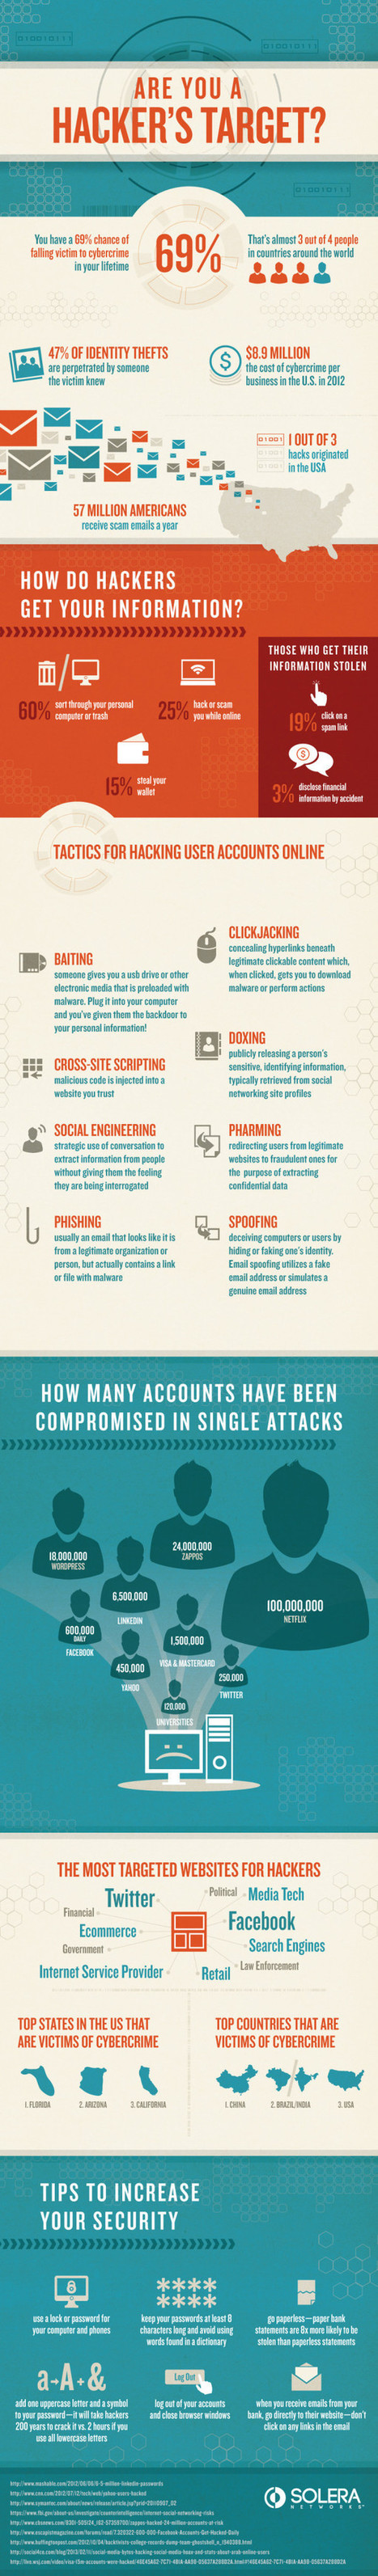 Are you a hacker's target? [infographic] | Surviving Social Chaos | Scoop.it